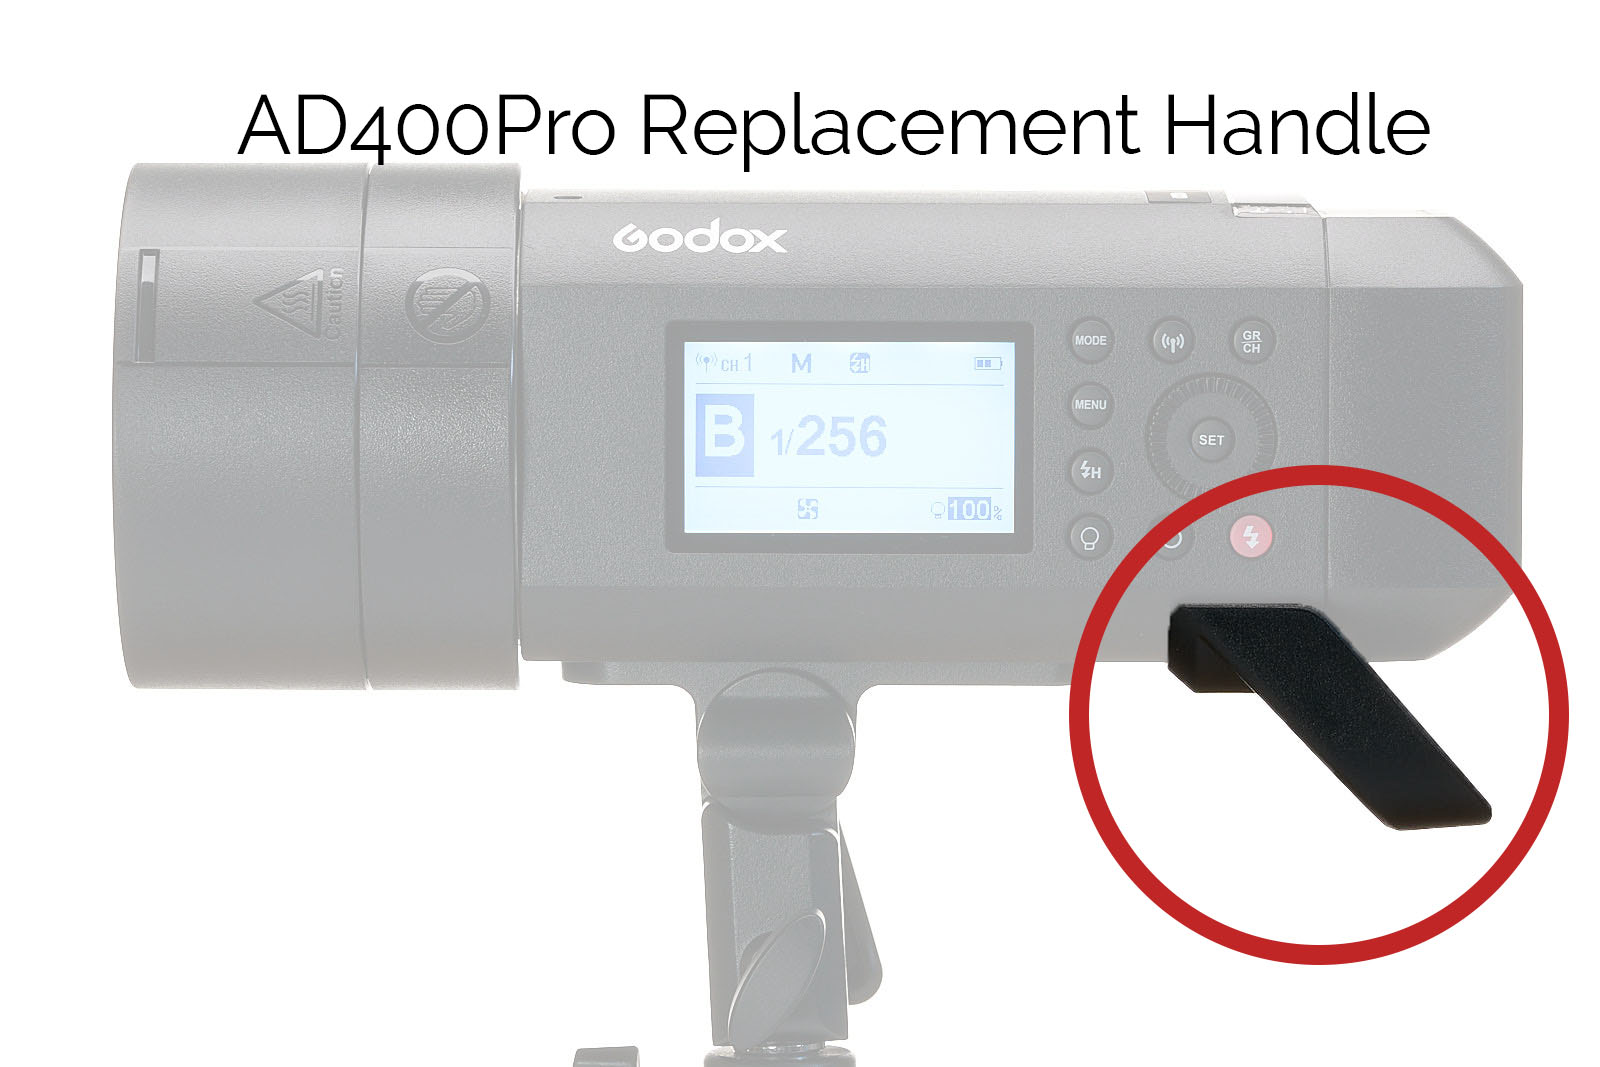 AD400Pro Replacement Handle